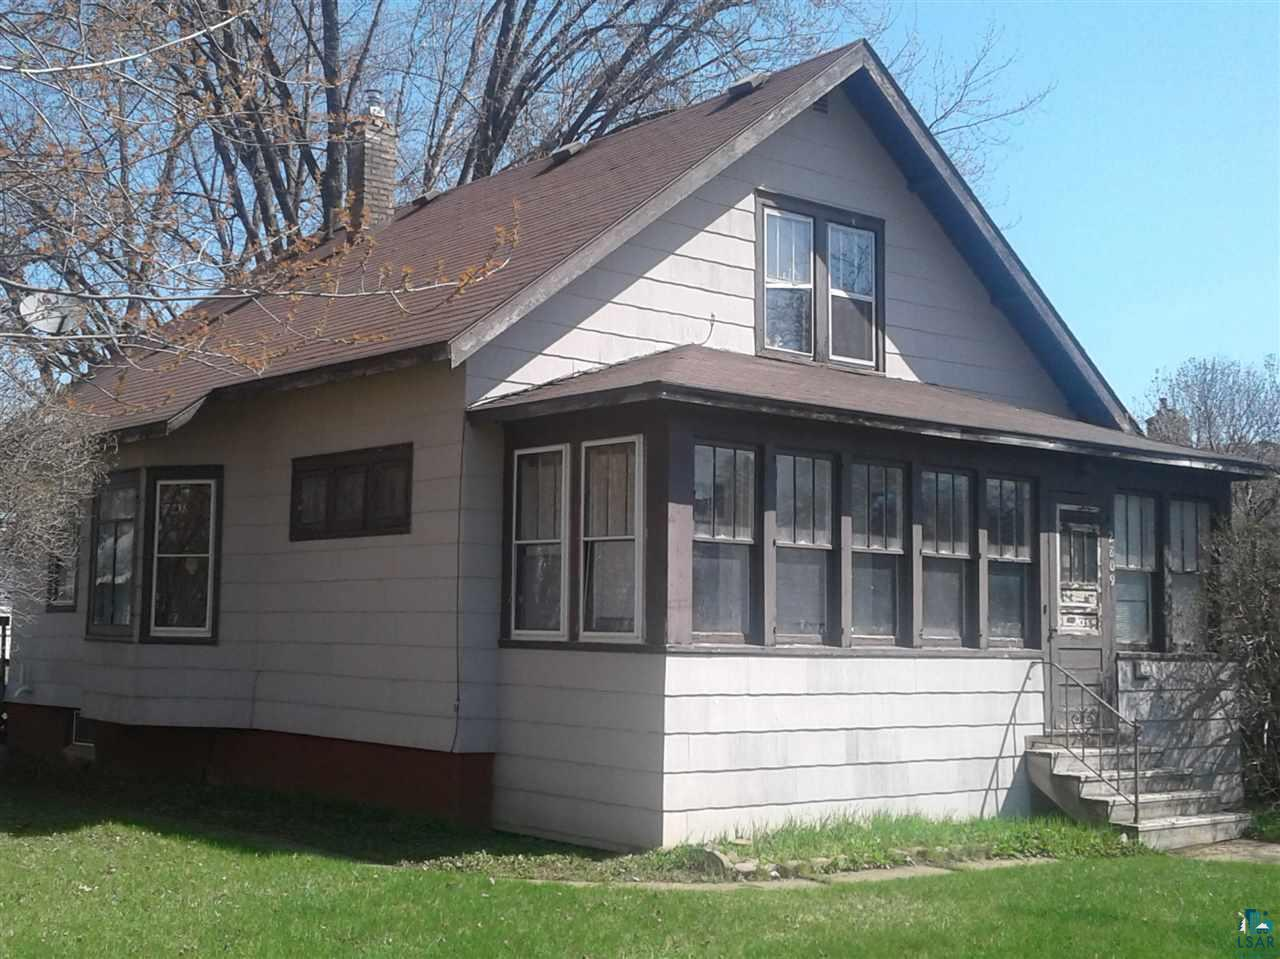 A tour is worth your time on this classic, well-cared-for Billings Park  2+ BR with detached garage.  Enclosed front porch.  Hardwood floors, formal living room, and main-floor bath/bedroom with den area.  Large bedroom and loft area in the upper level. Newer furnace/water heater.  The seller is ready for your offer.  See it soon!